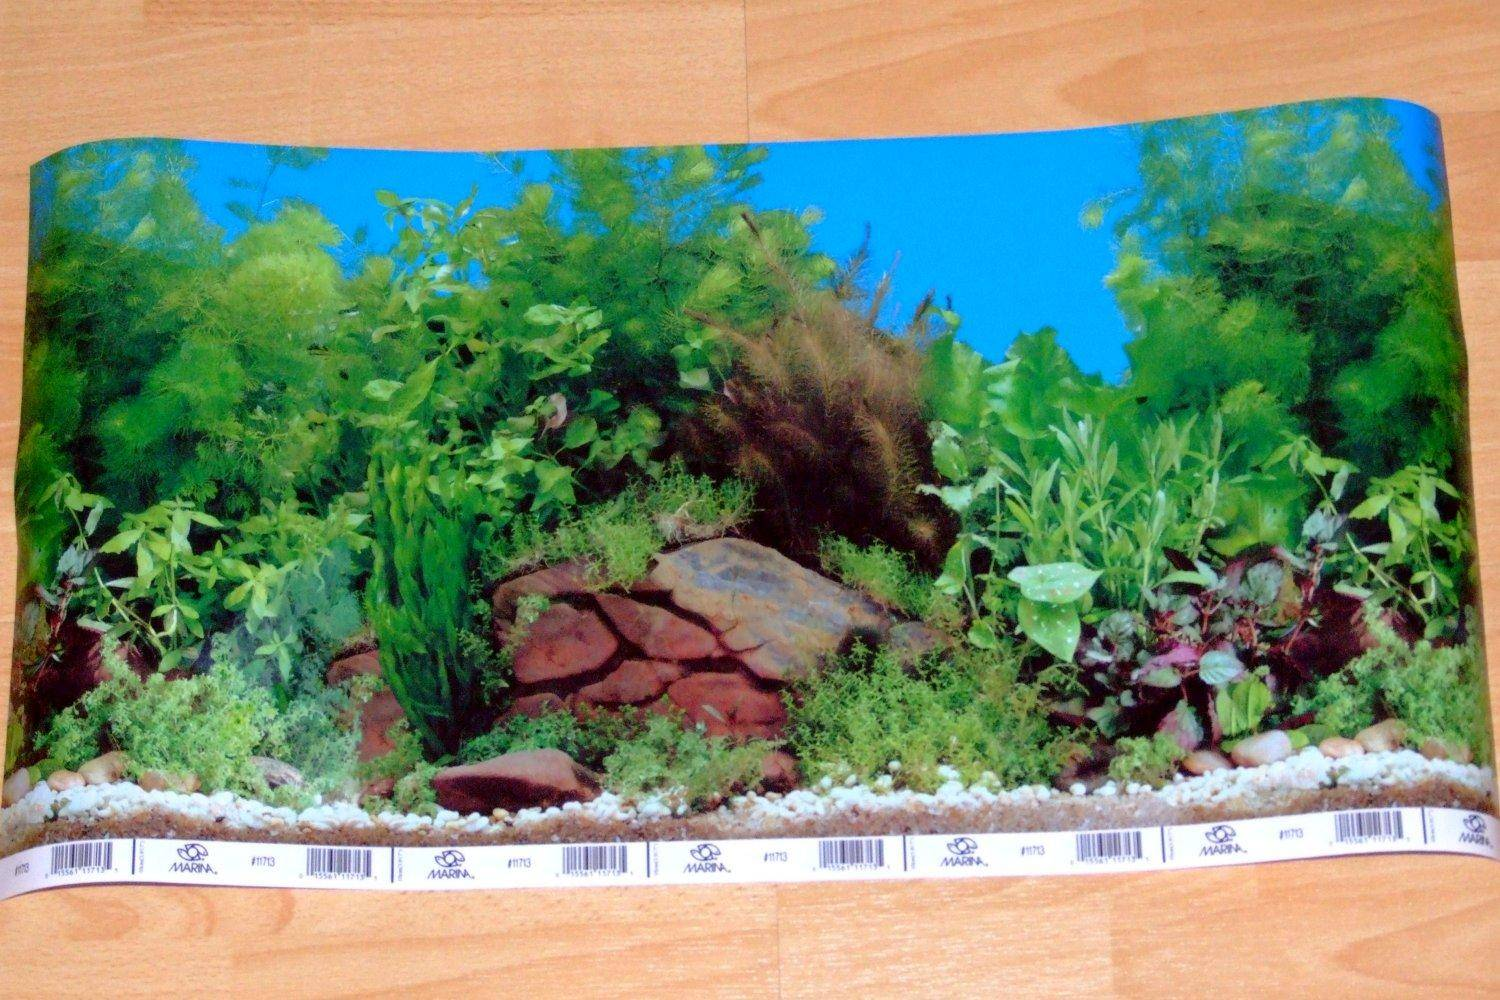 photo regarding Aquarium Backgrounds Printable called A very simple expert upon picking out aquarium backgrounds